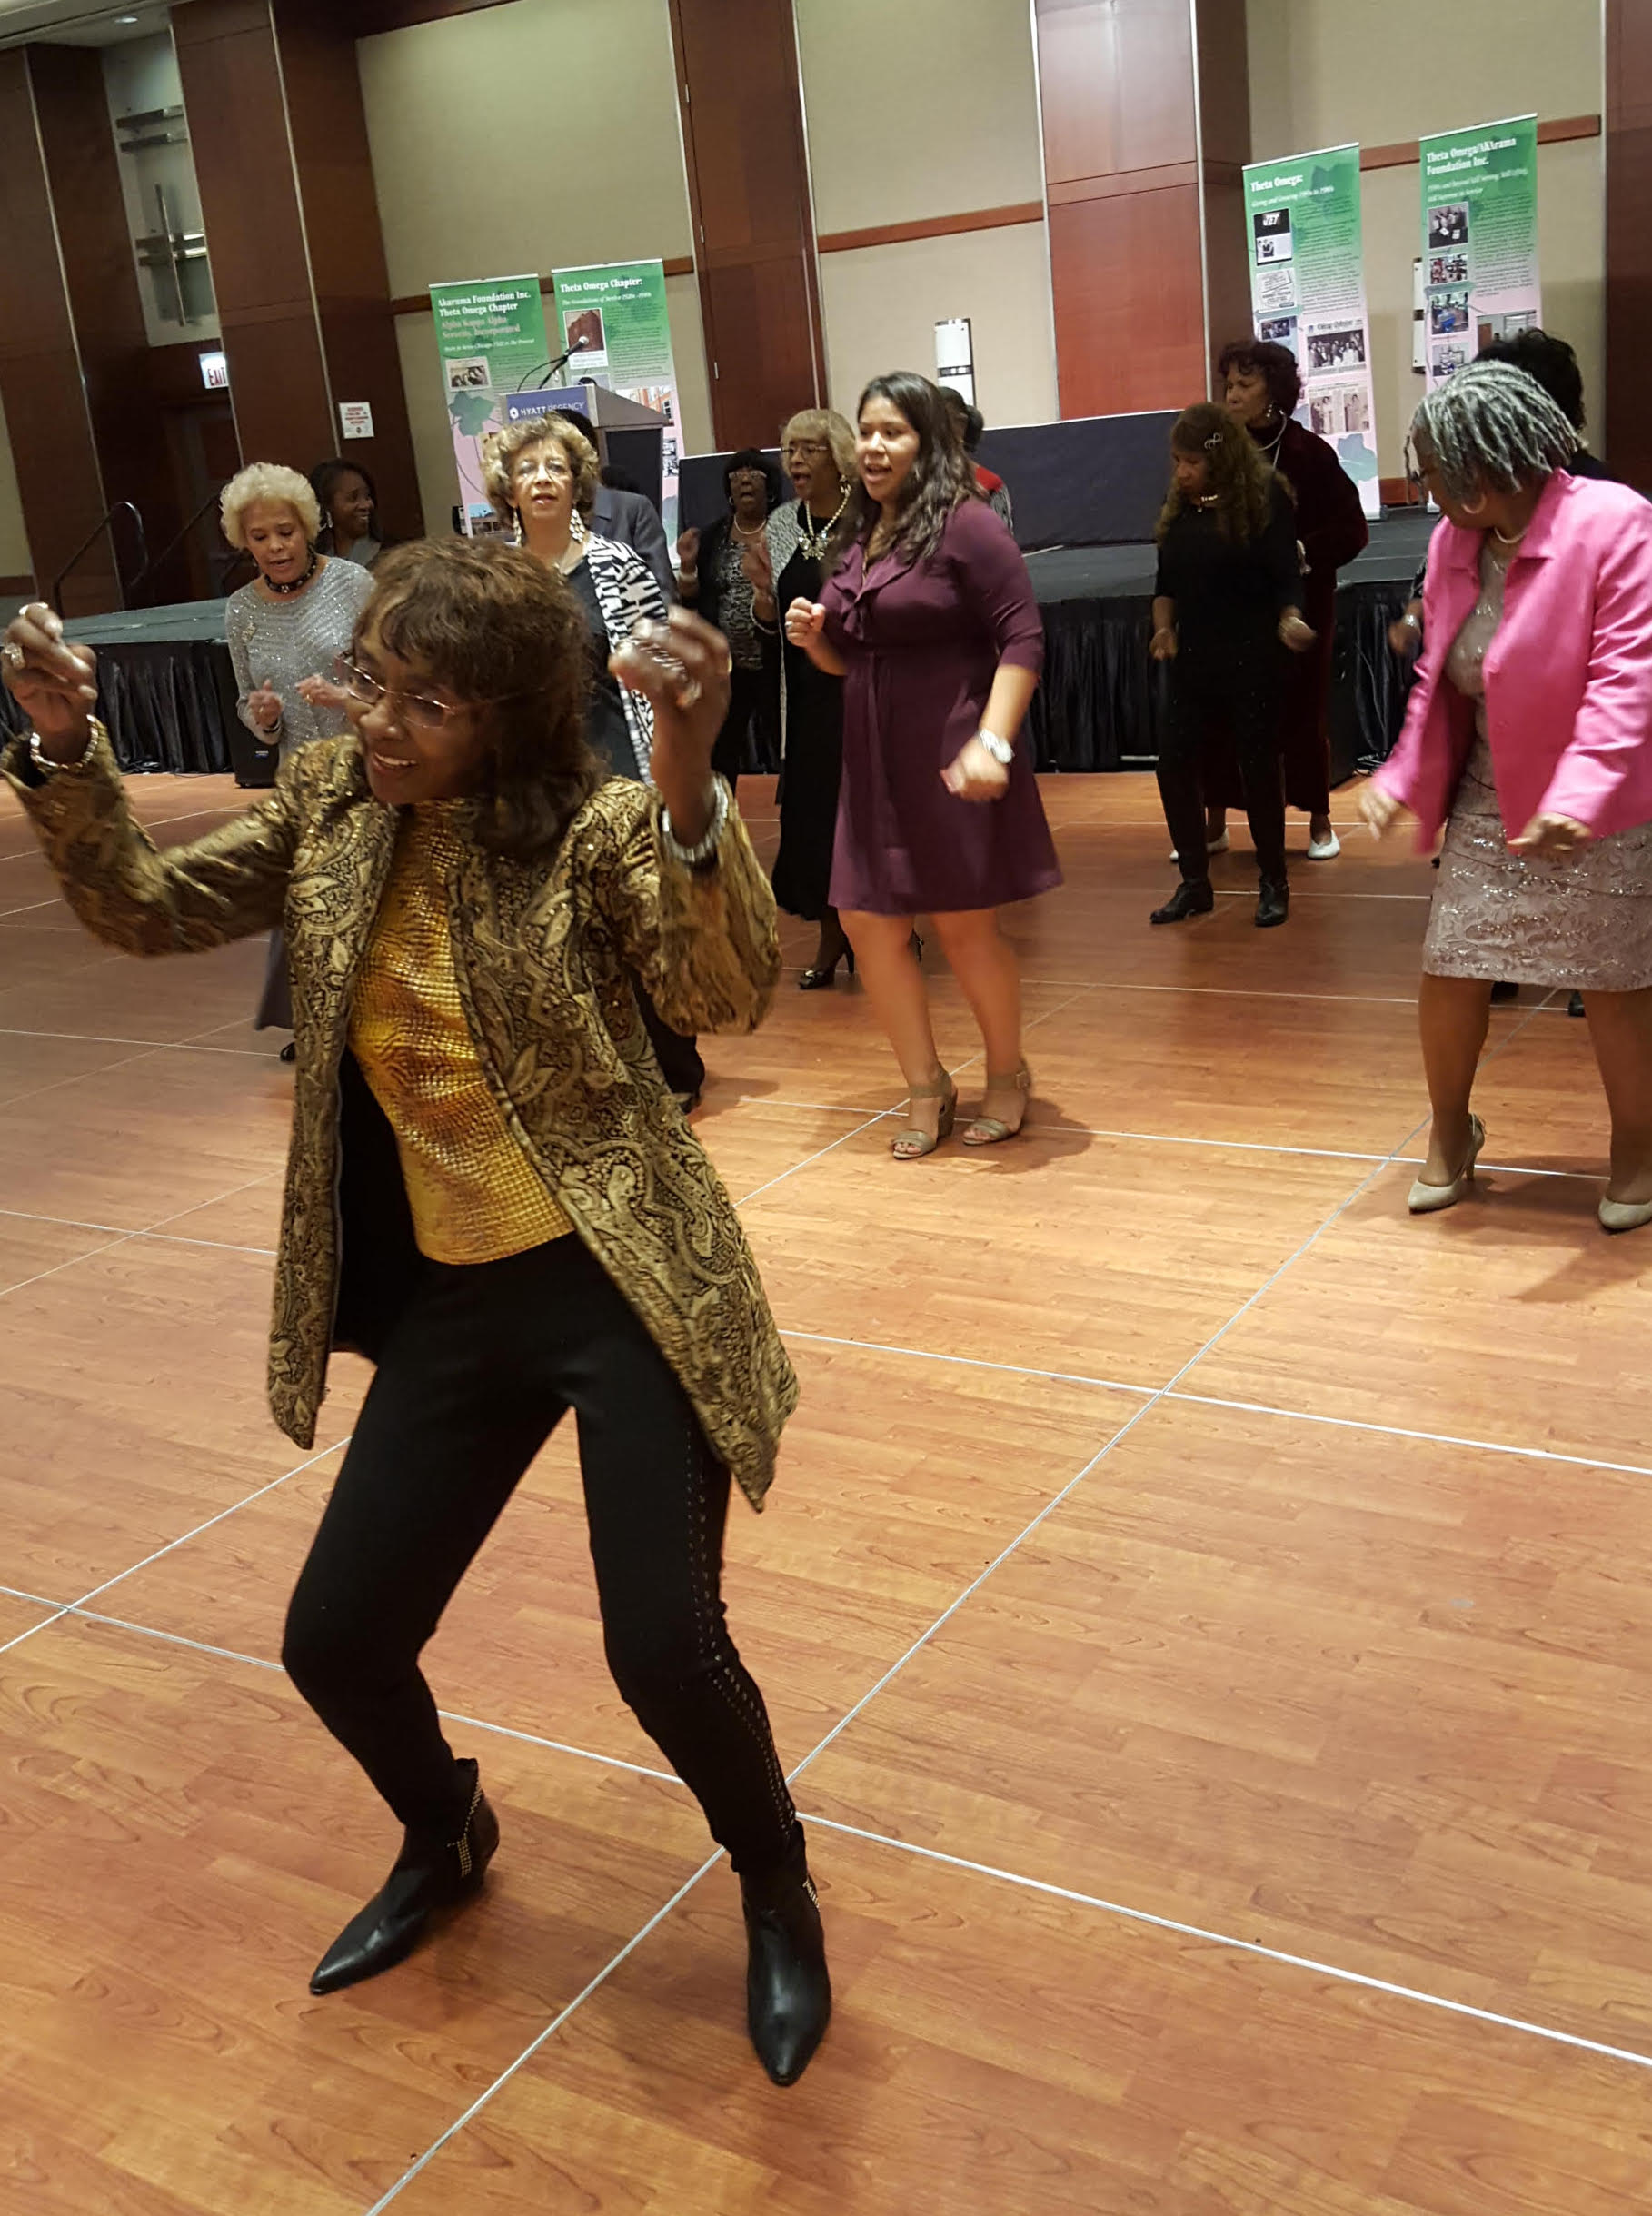 Enid W. Collins, 83, operated dancing schools on Chicago's South Side and was still dancing up until she took ill in September.